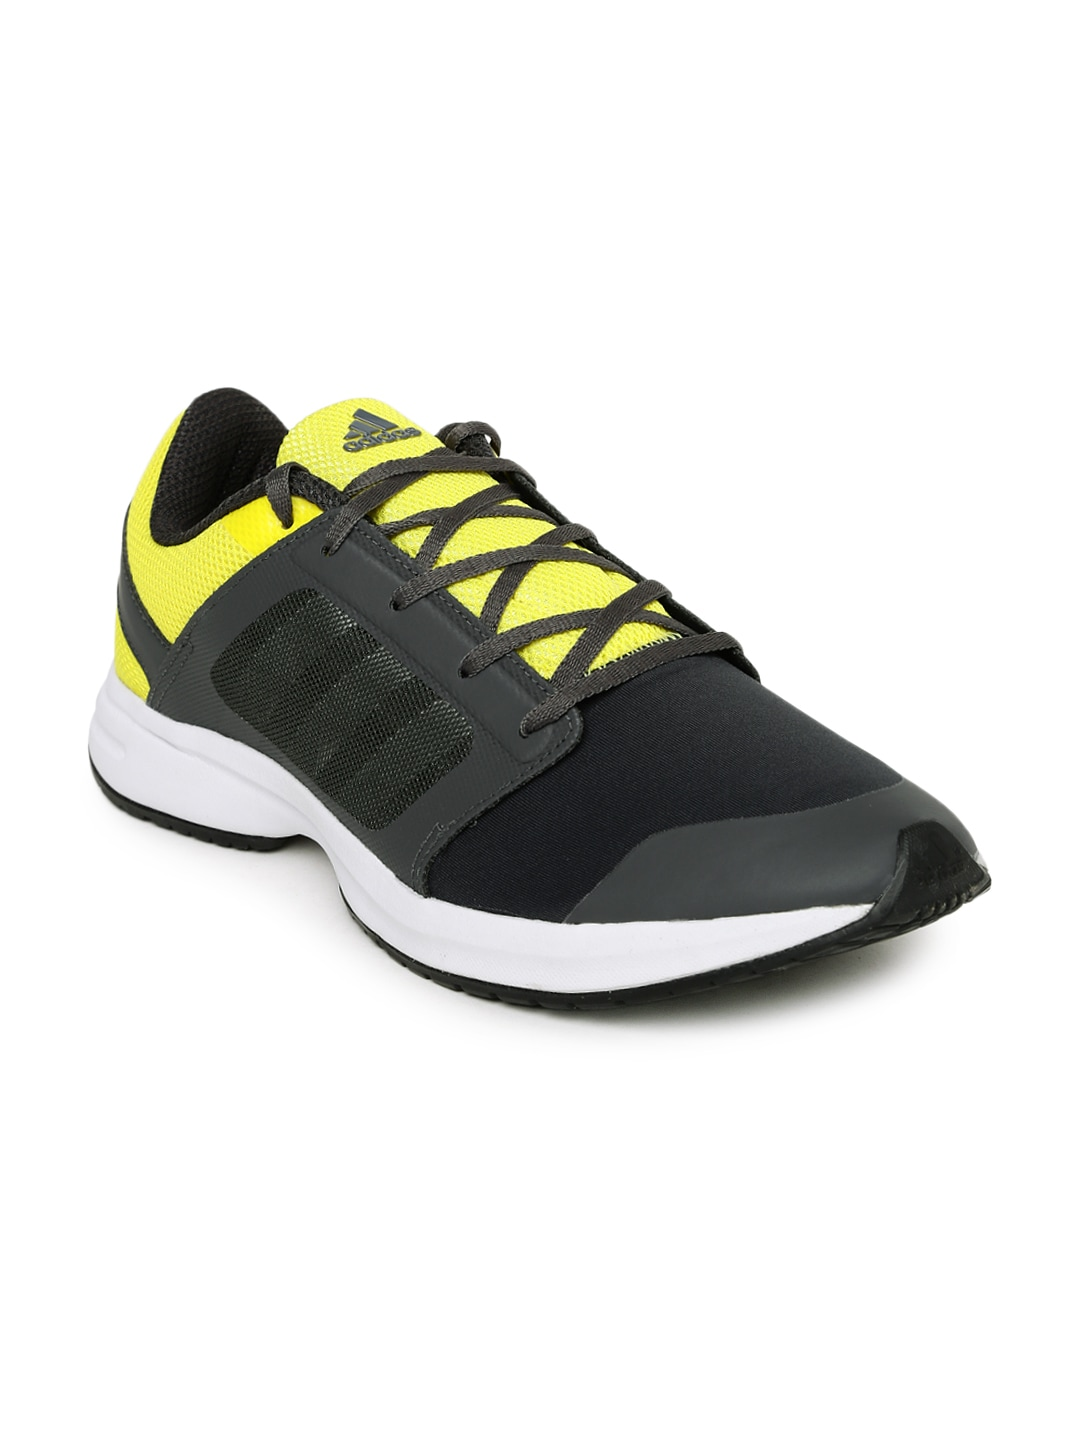 aee6ea160 Sports Shoes for Men - Buy Men Sports Shoes Online in India - Myntra